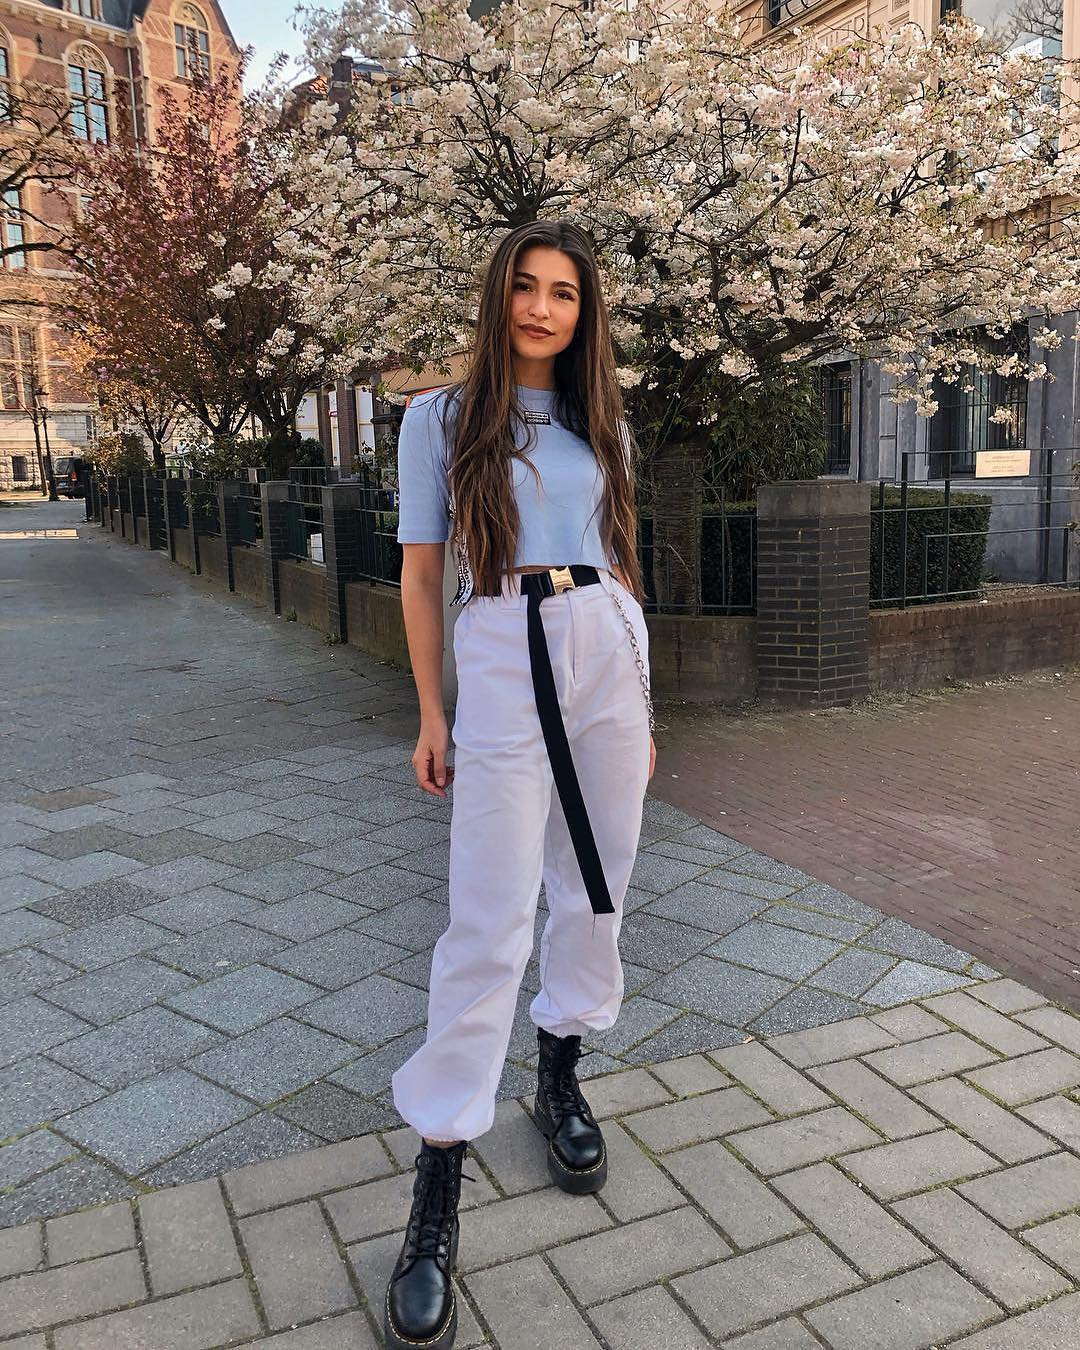 Pastel Blue Top With White Jogger Pants